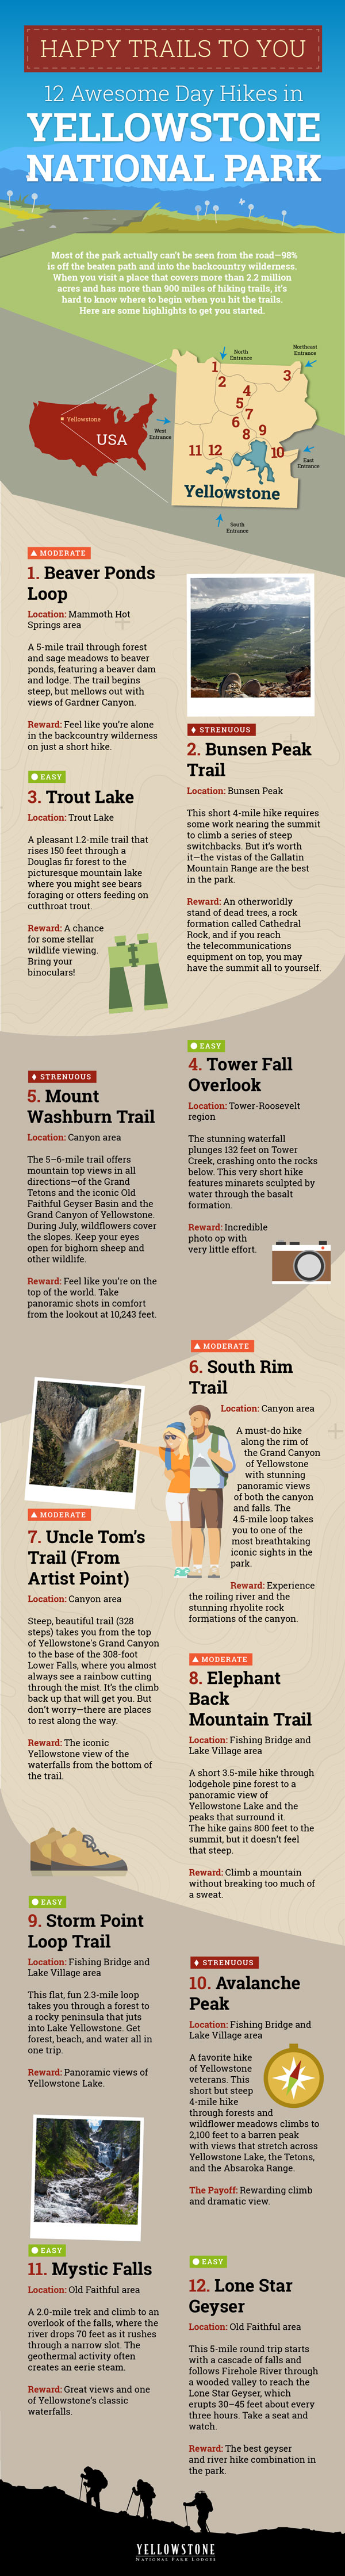 Infographic for day hikes in yellowstone